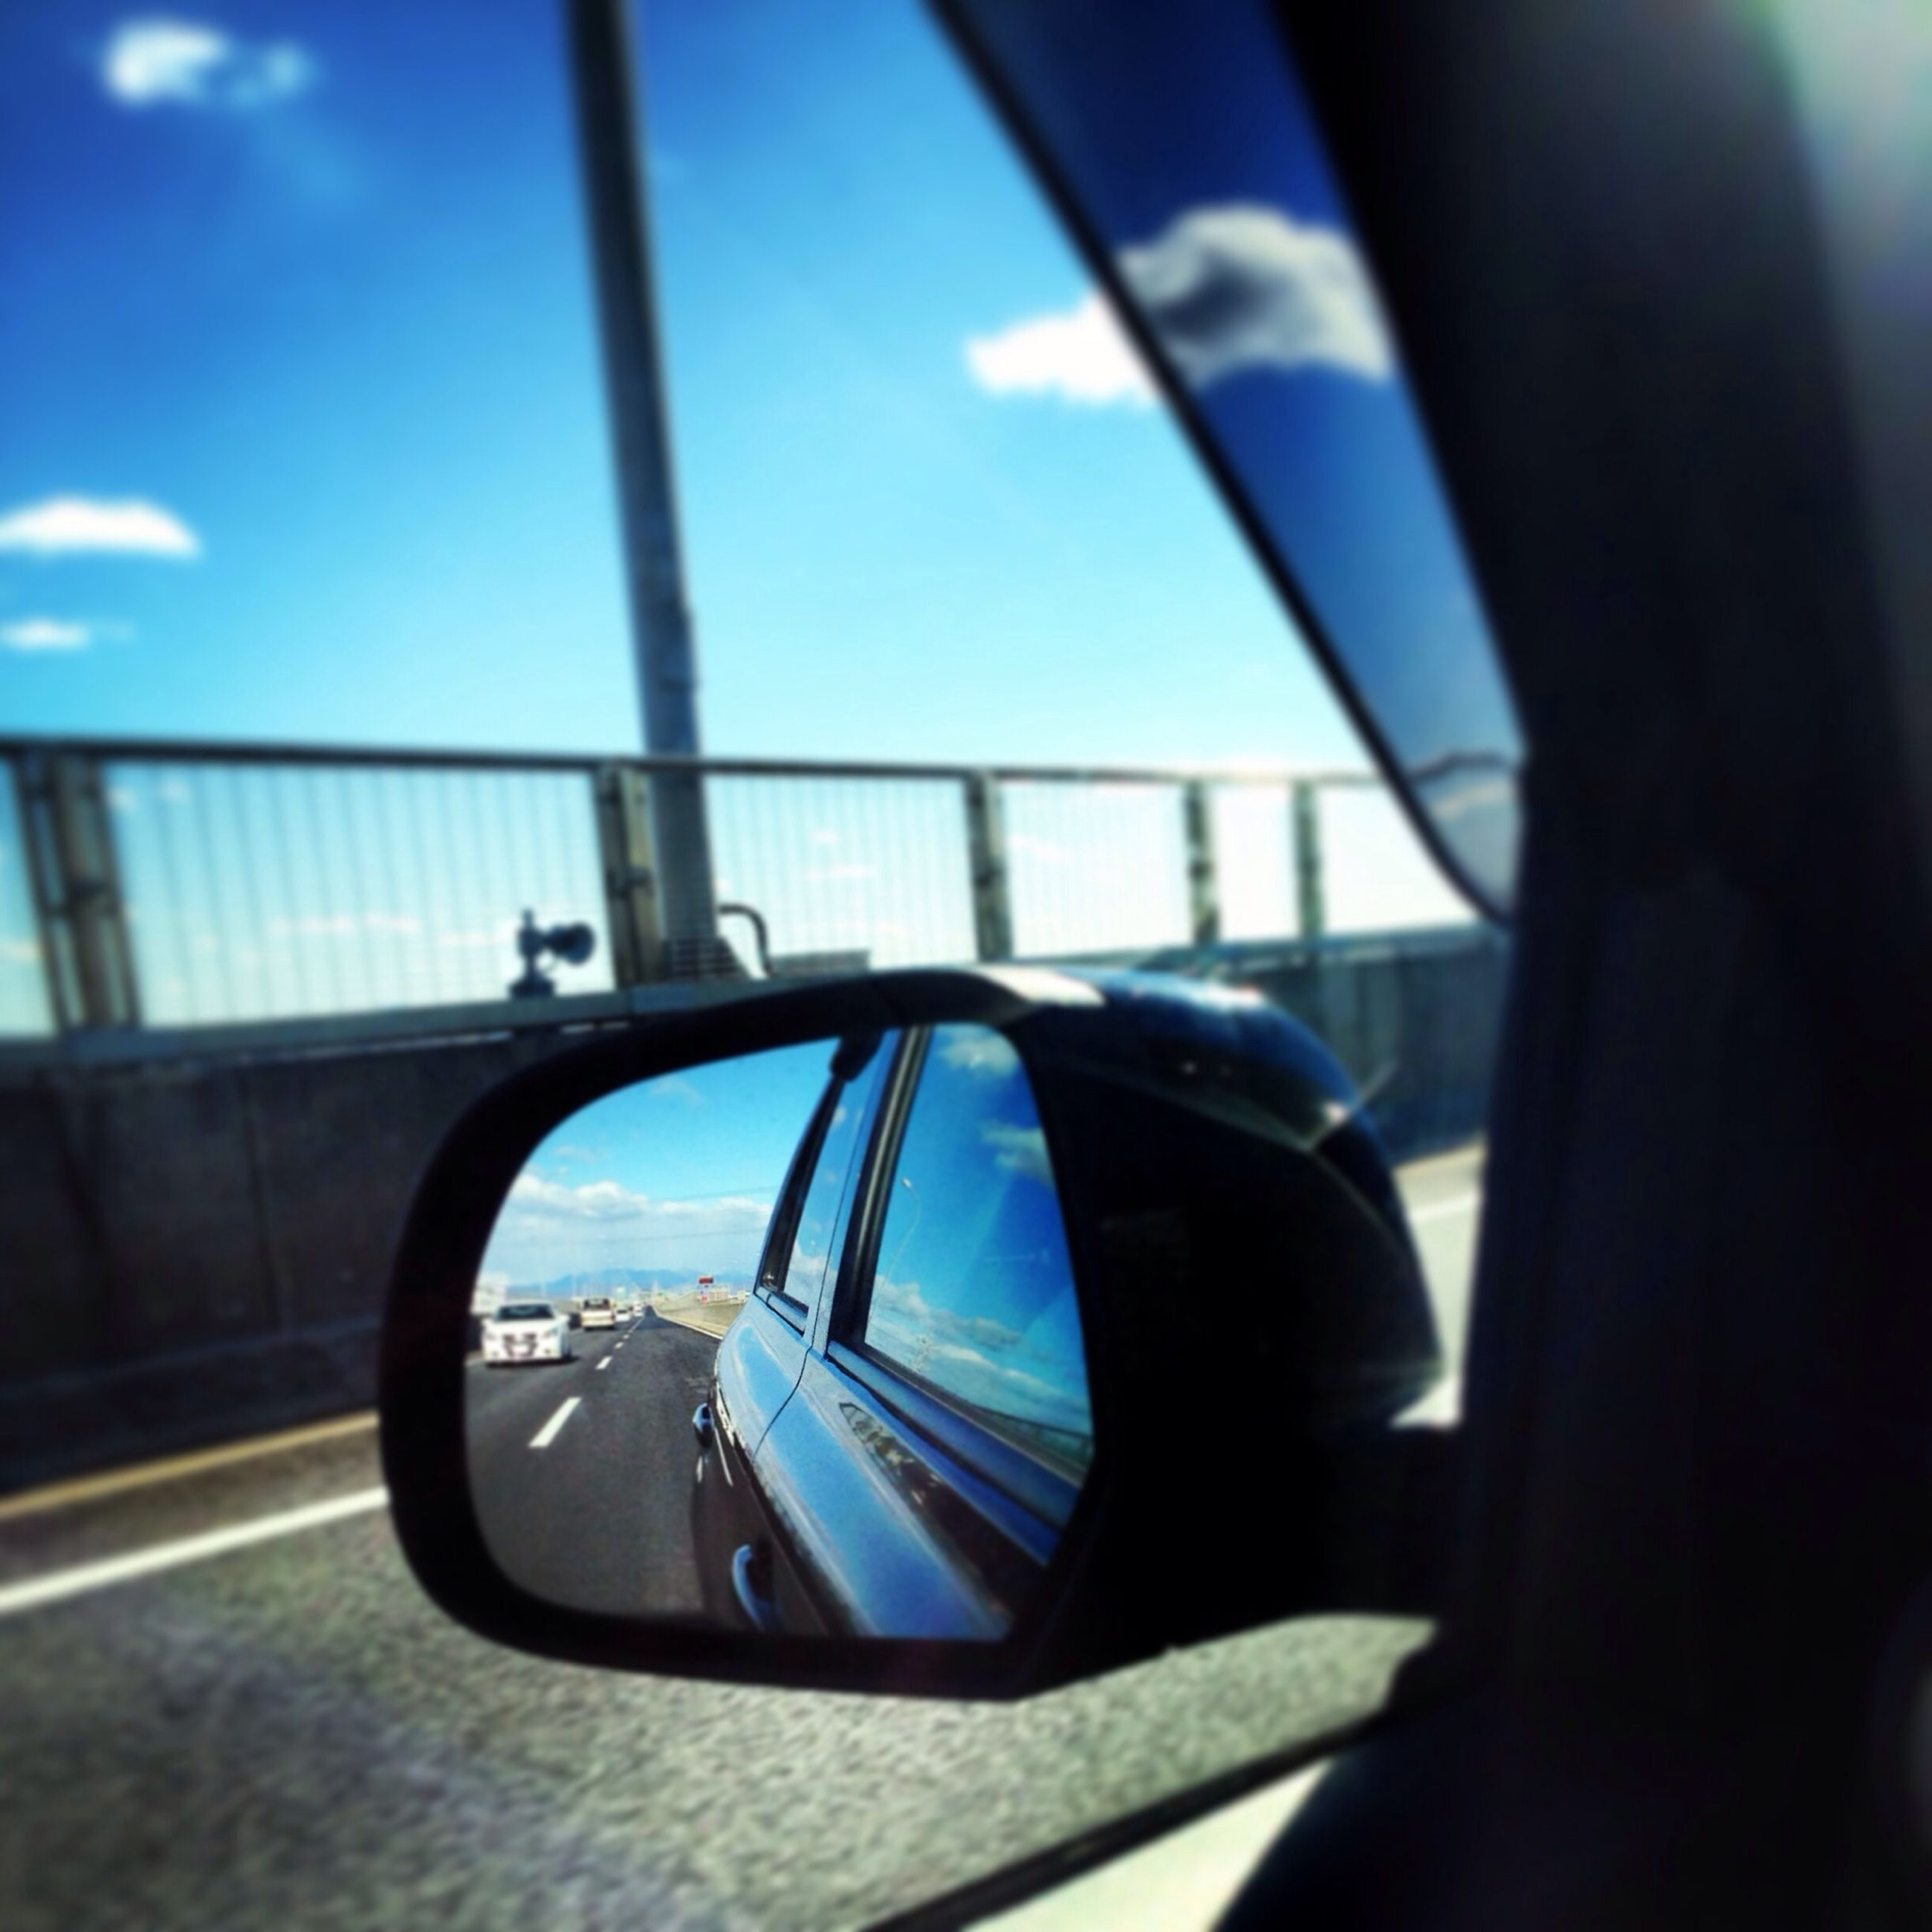 transportation, mode of transport, land vehicle, car, reflection, side-view mirror, road, travel, sky, car interior, on the move, vehicle interior, part of, street, blue, glass - material, cropped, close-up, sunlight, transparent